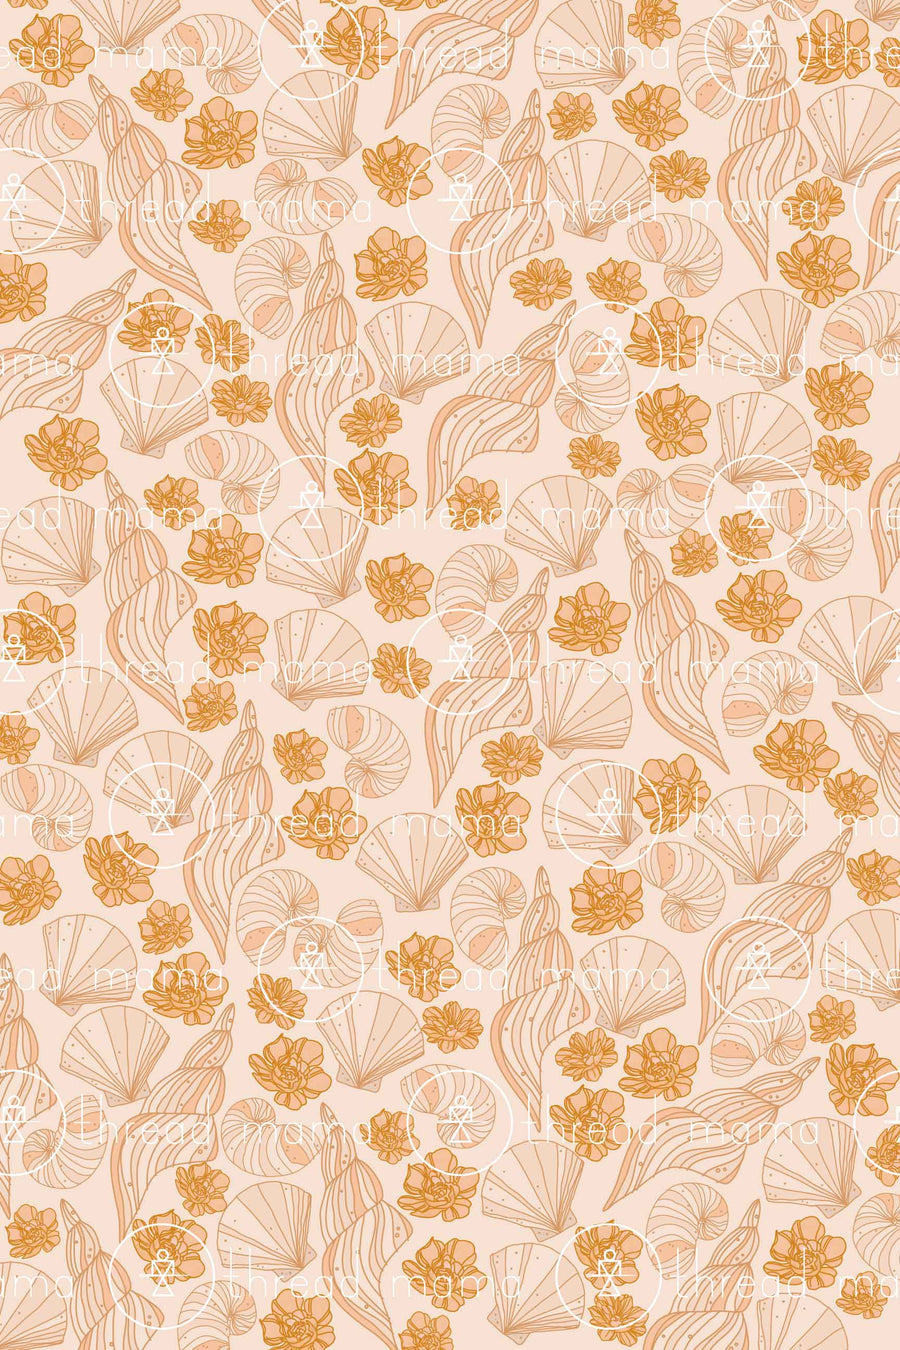 Background Pattern #15 (Printable Poster)